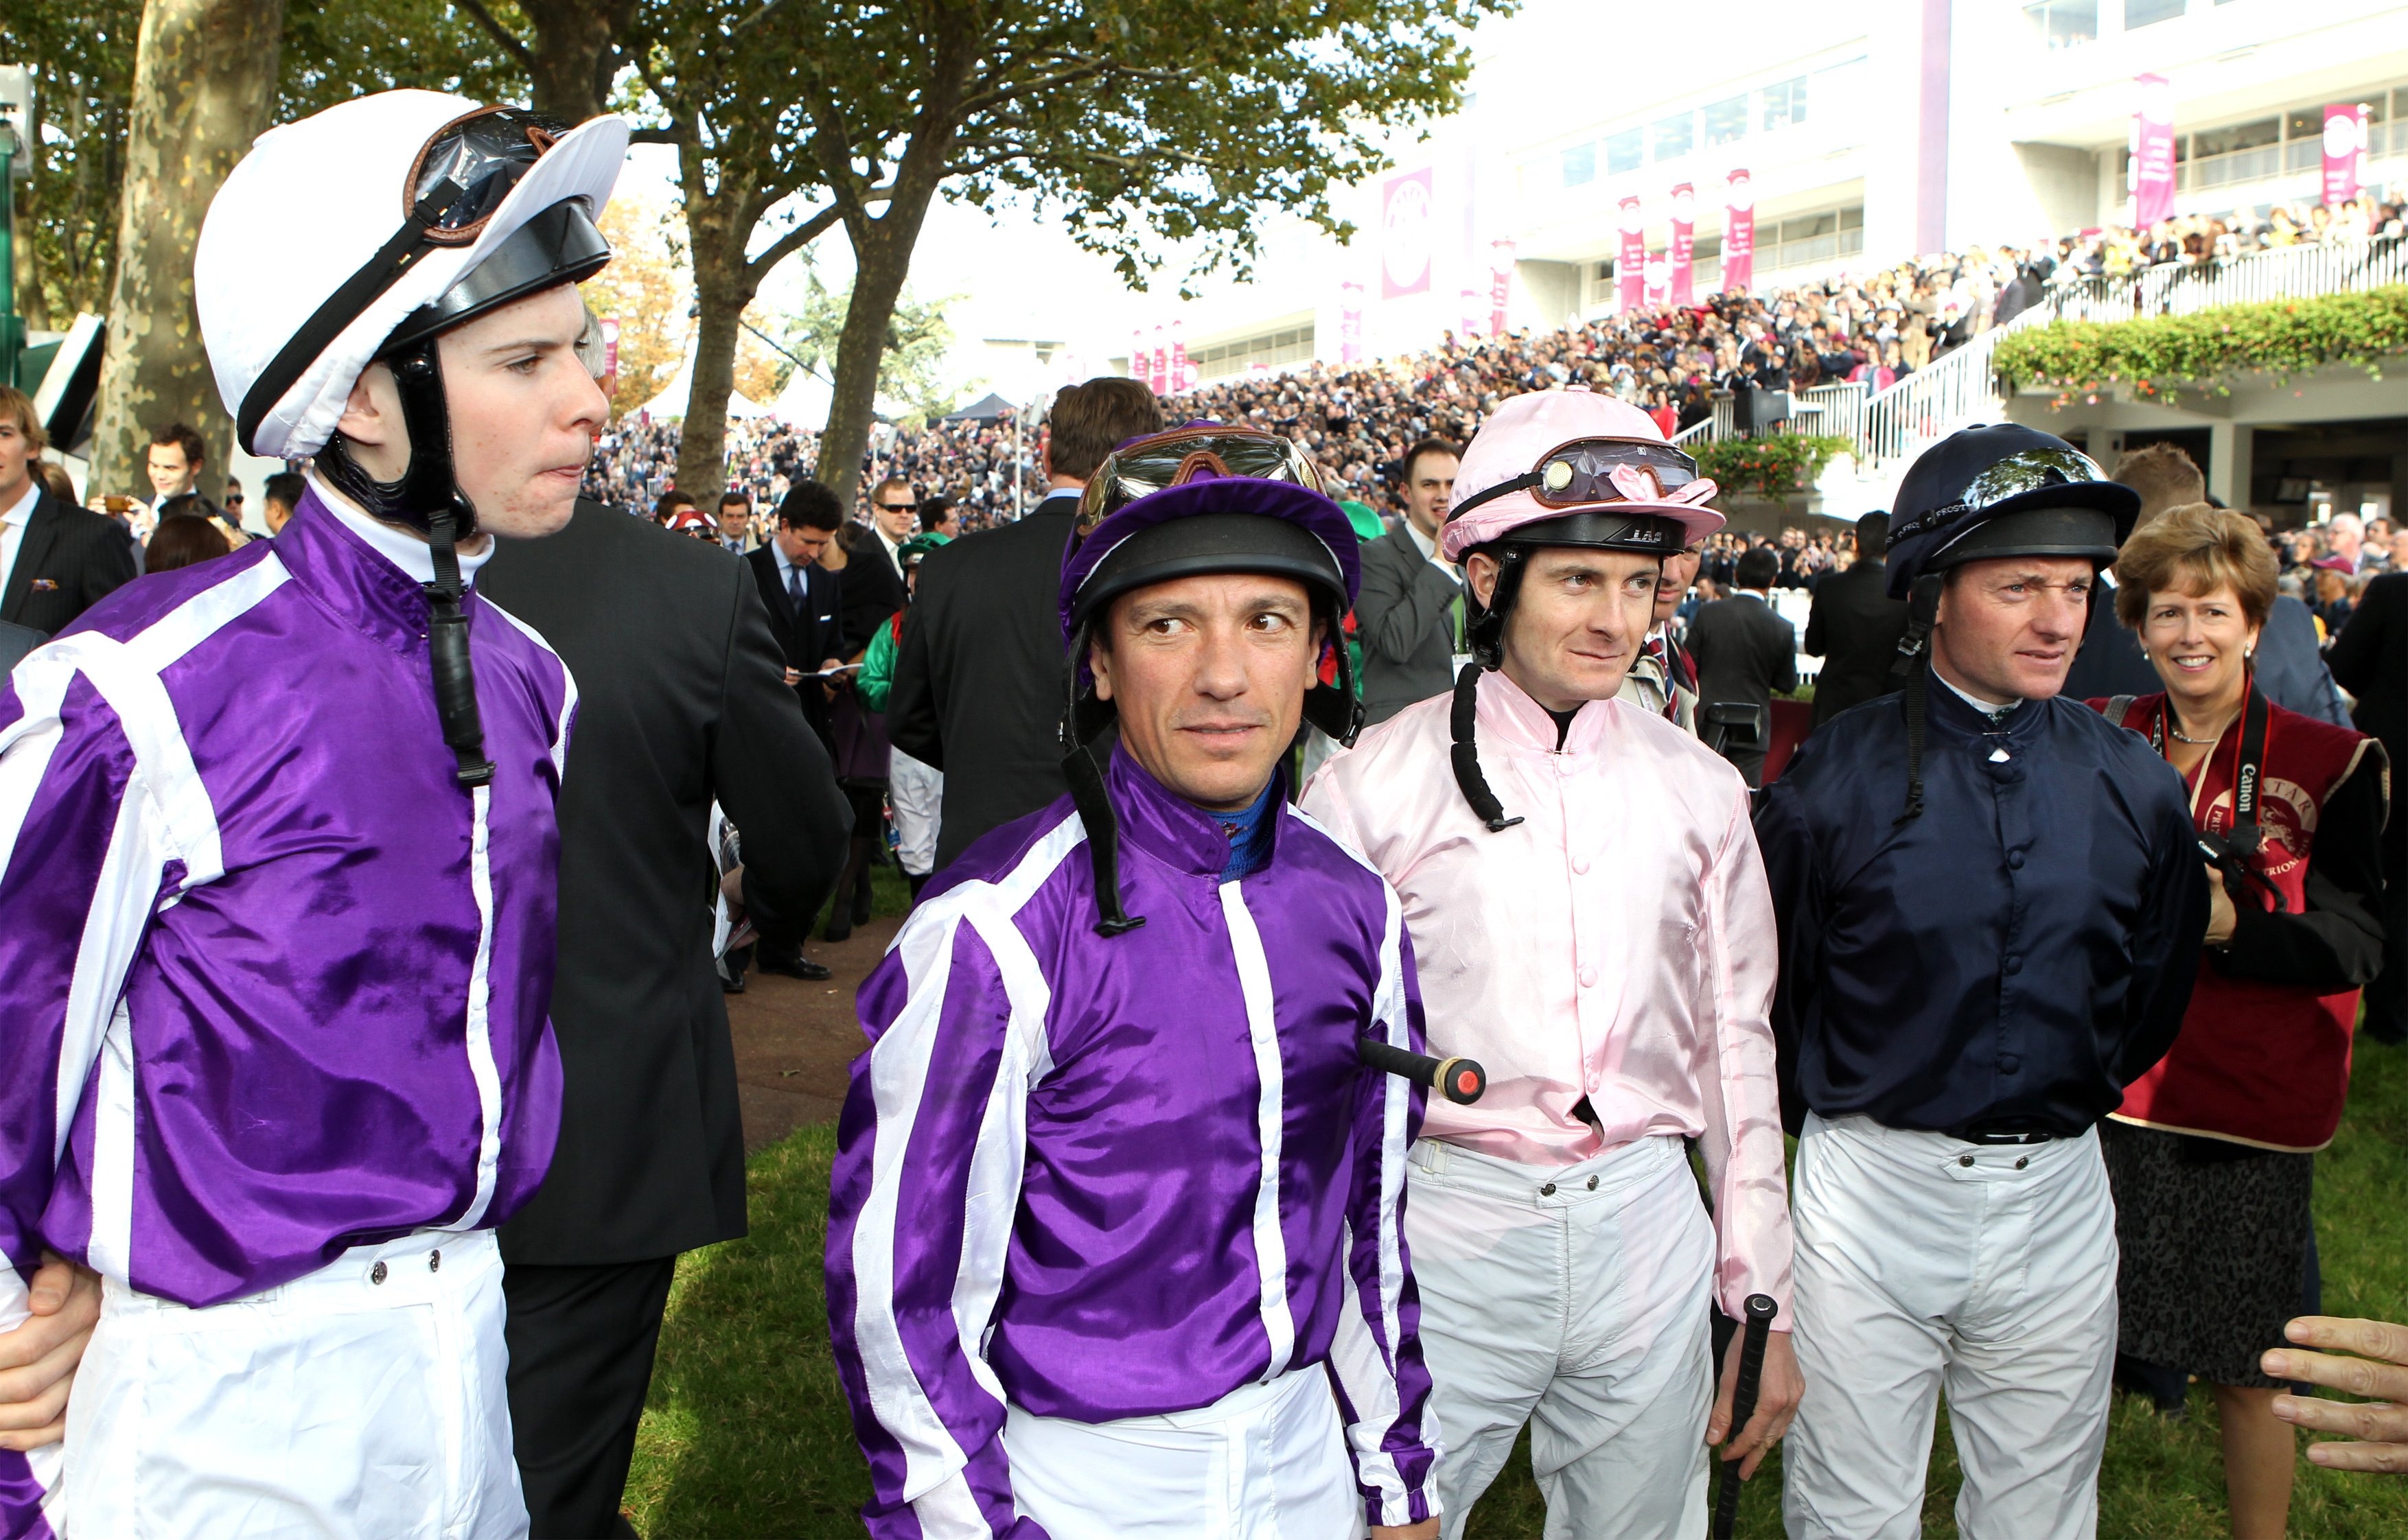 THE DERBY (GR1) - Les O'Brien en force, Dettori sur Circus Maximus